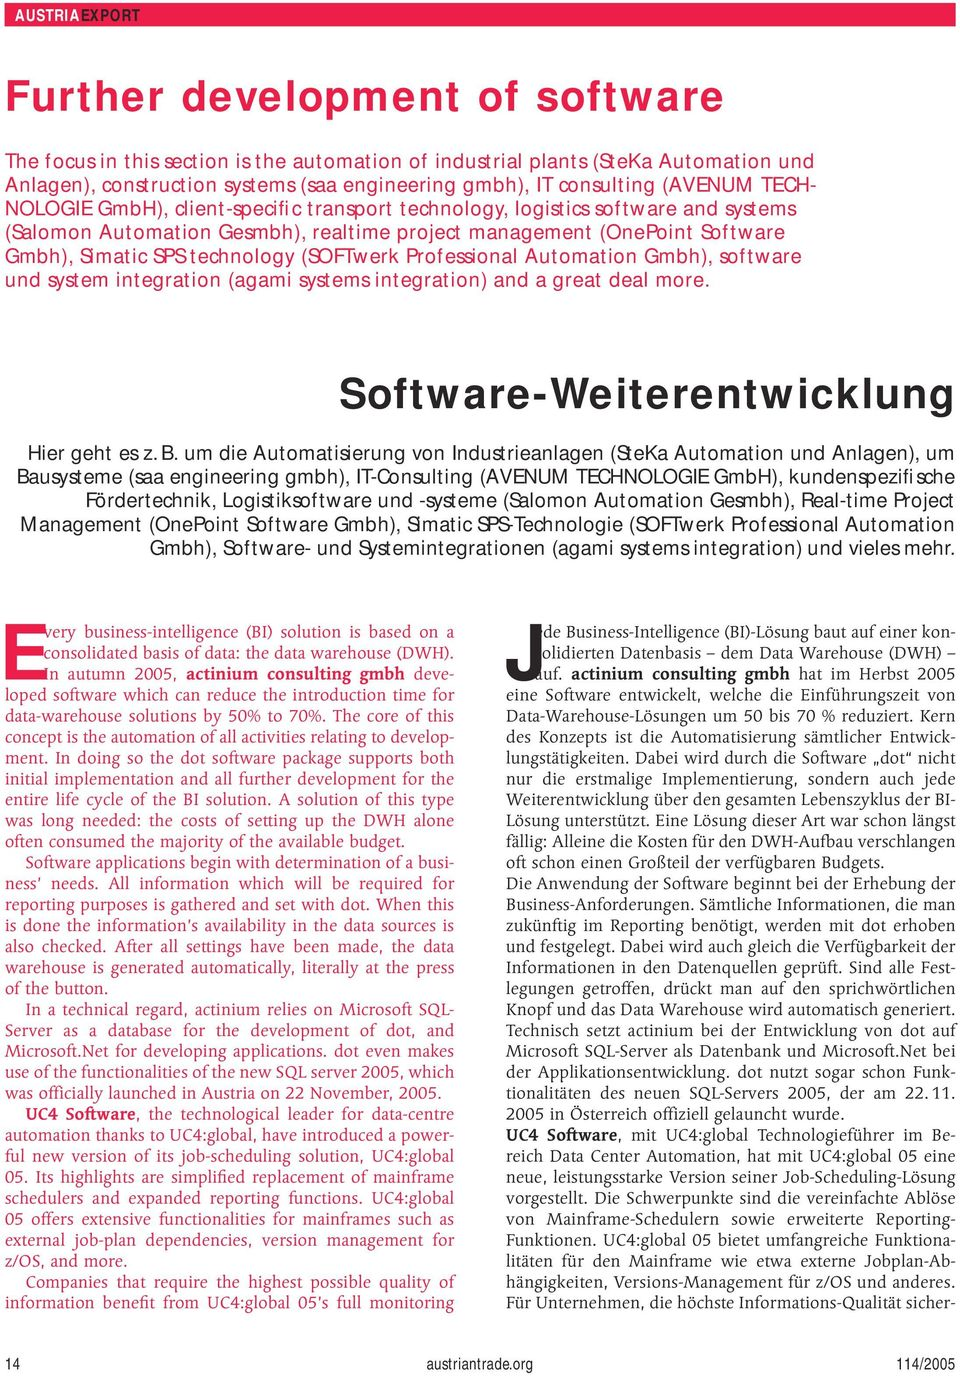 Automation Gmbh), software und system integration (agami systems integration) and a great deal more. -Weiterentwicklung Hier geht es z. B.